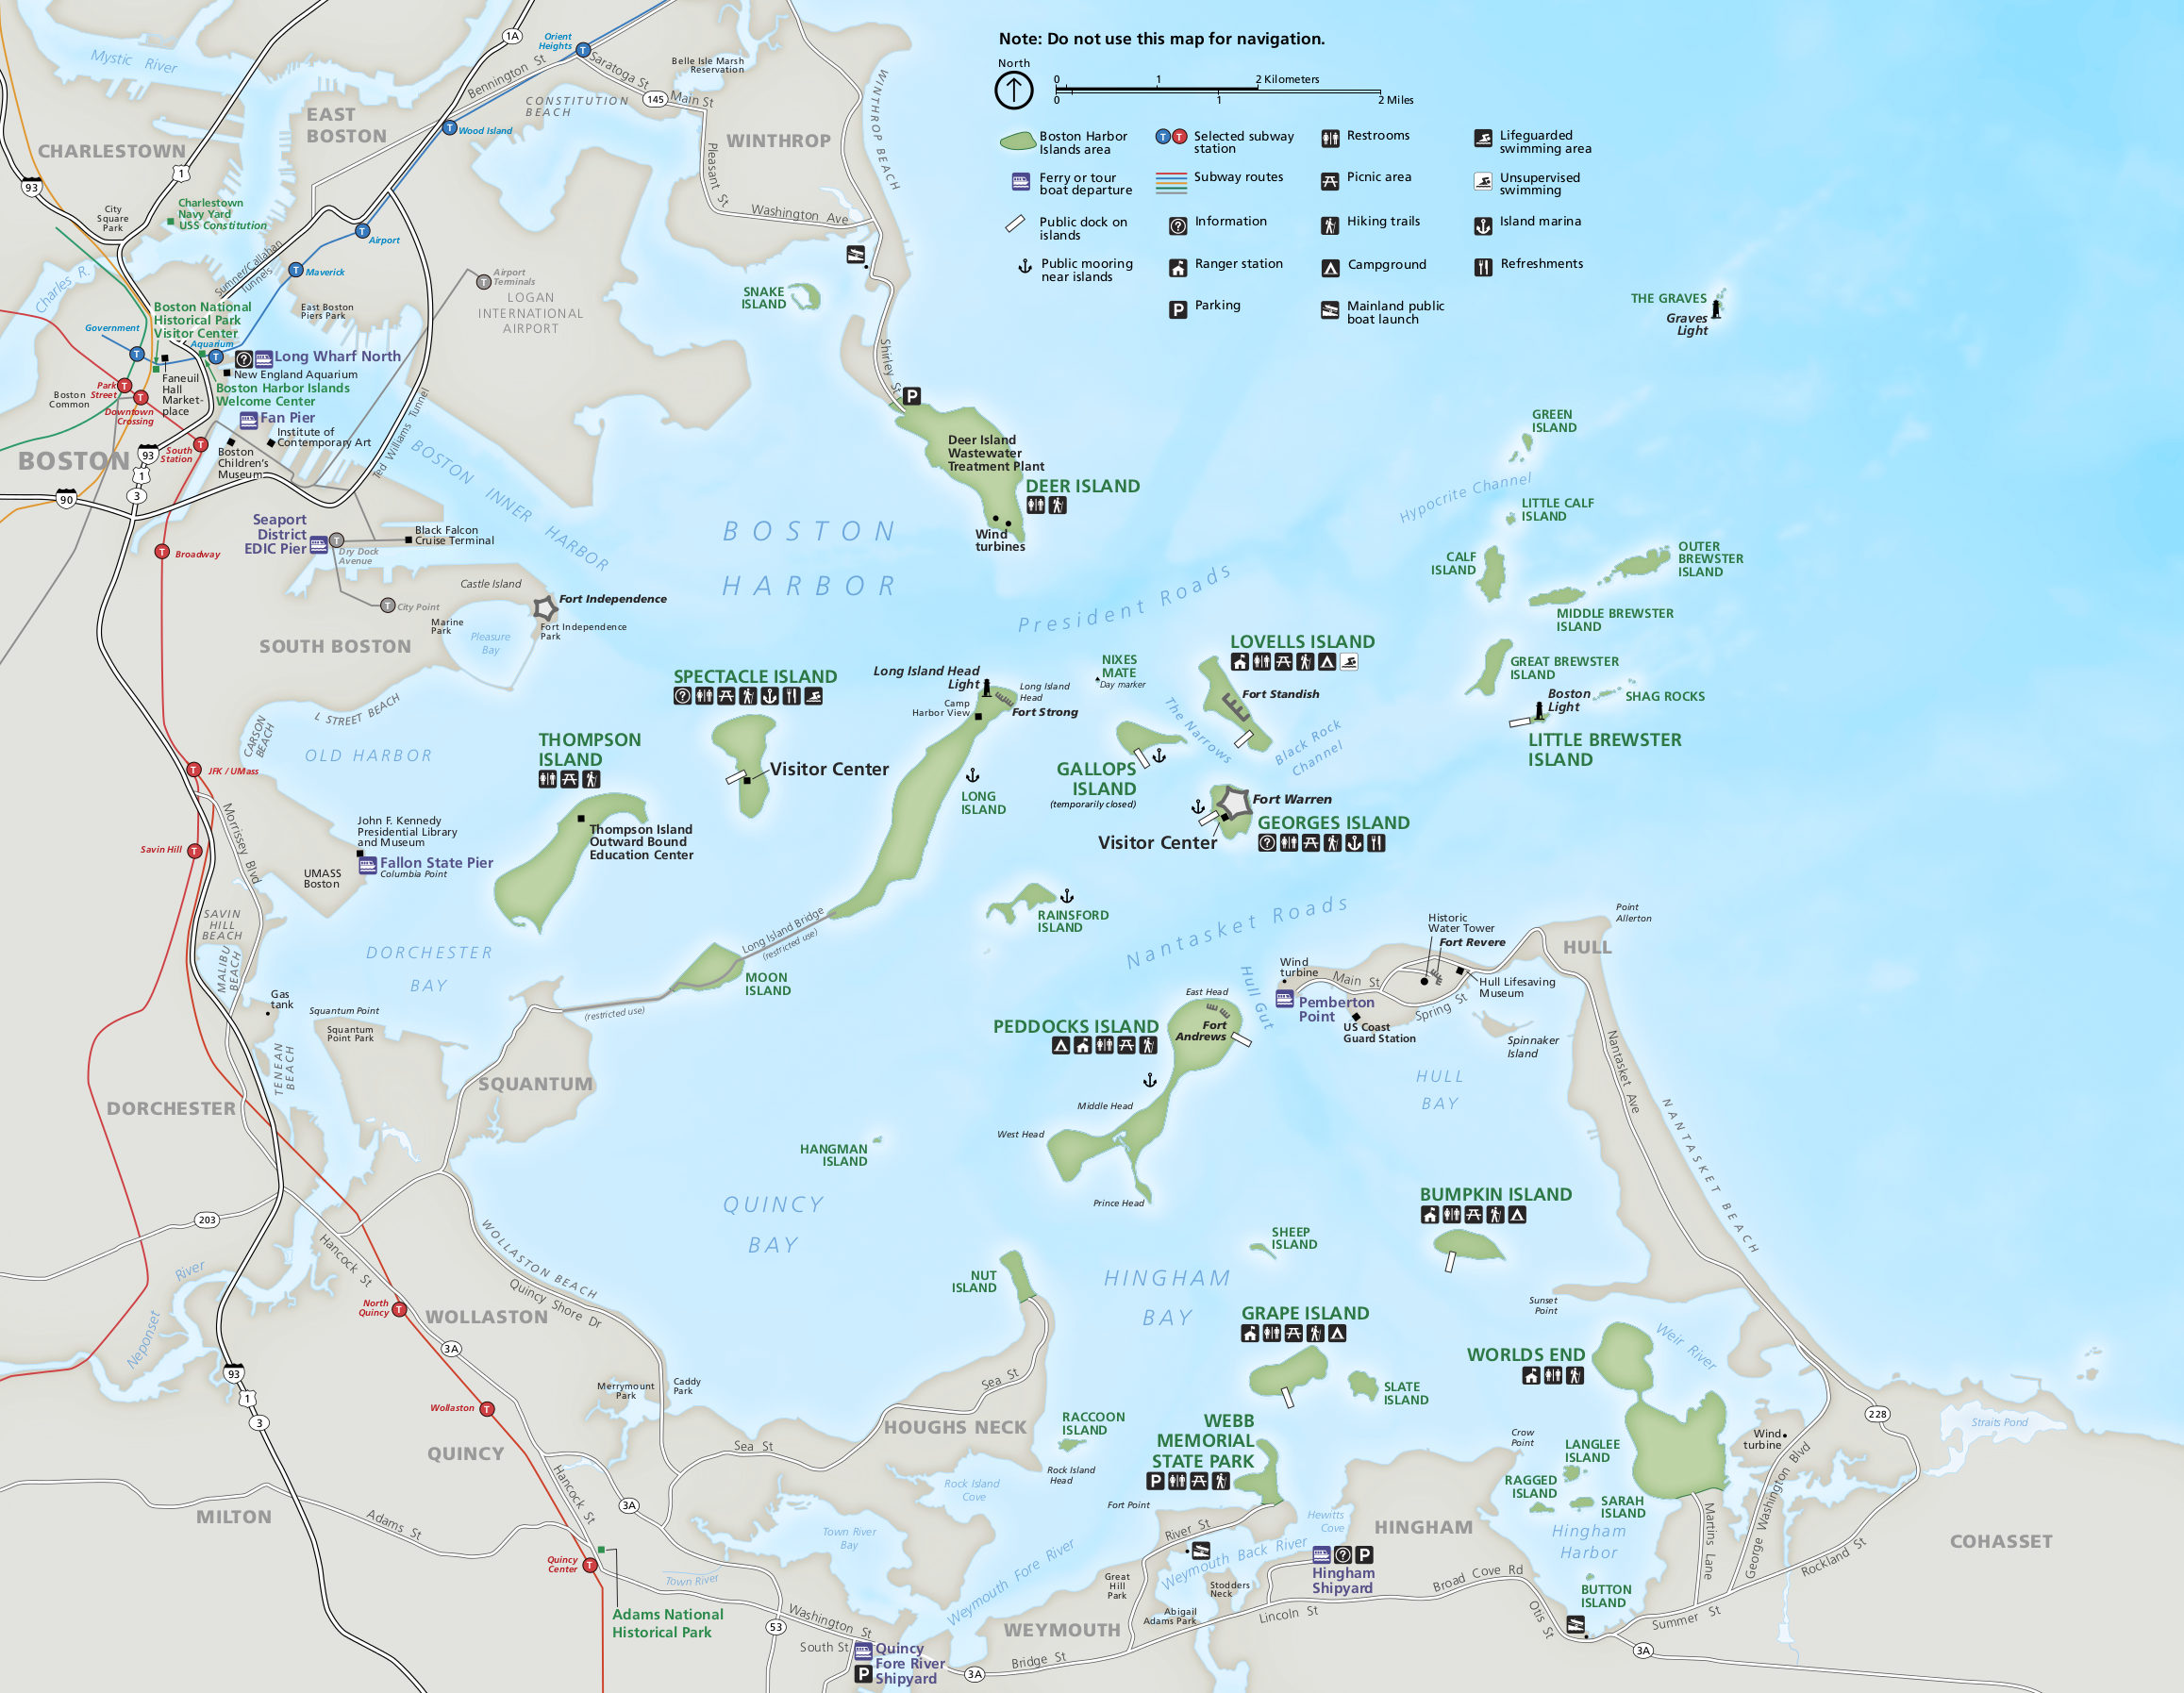 Boston Harbor Map Boston Harbor Islands Maps | NPMaps.  just free maps, period. Boston Harbor Map